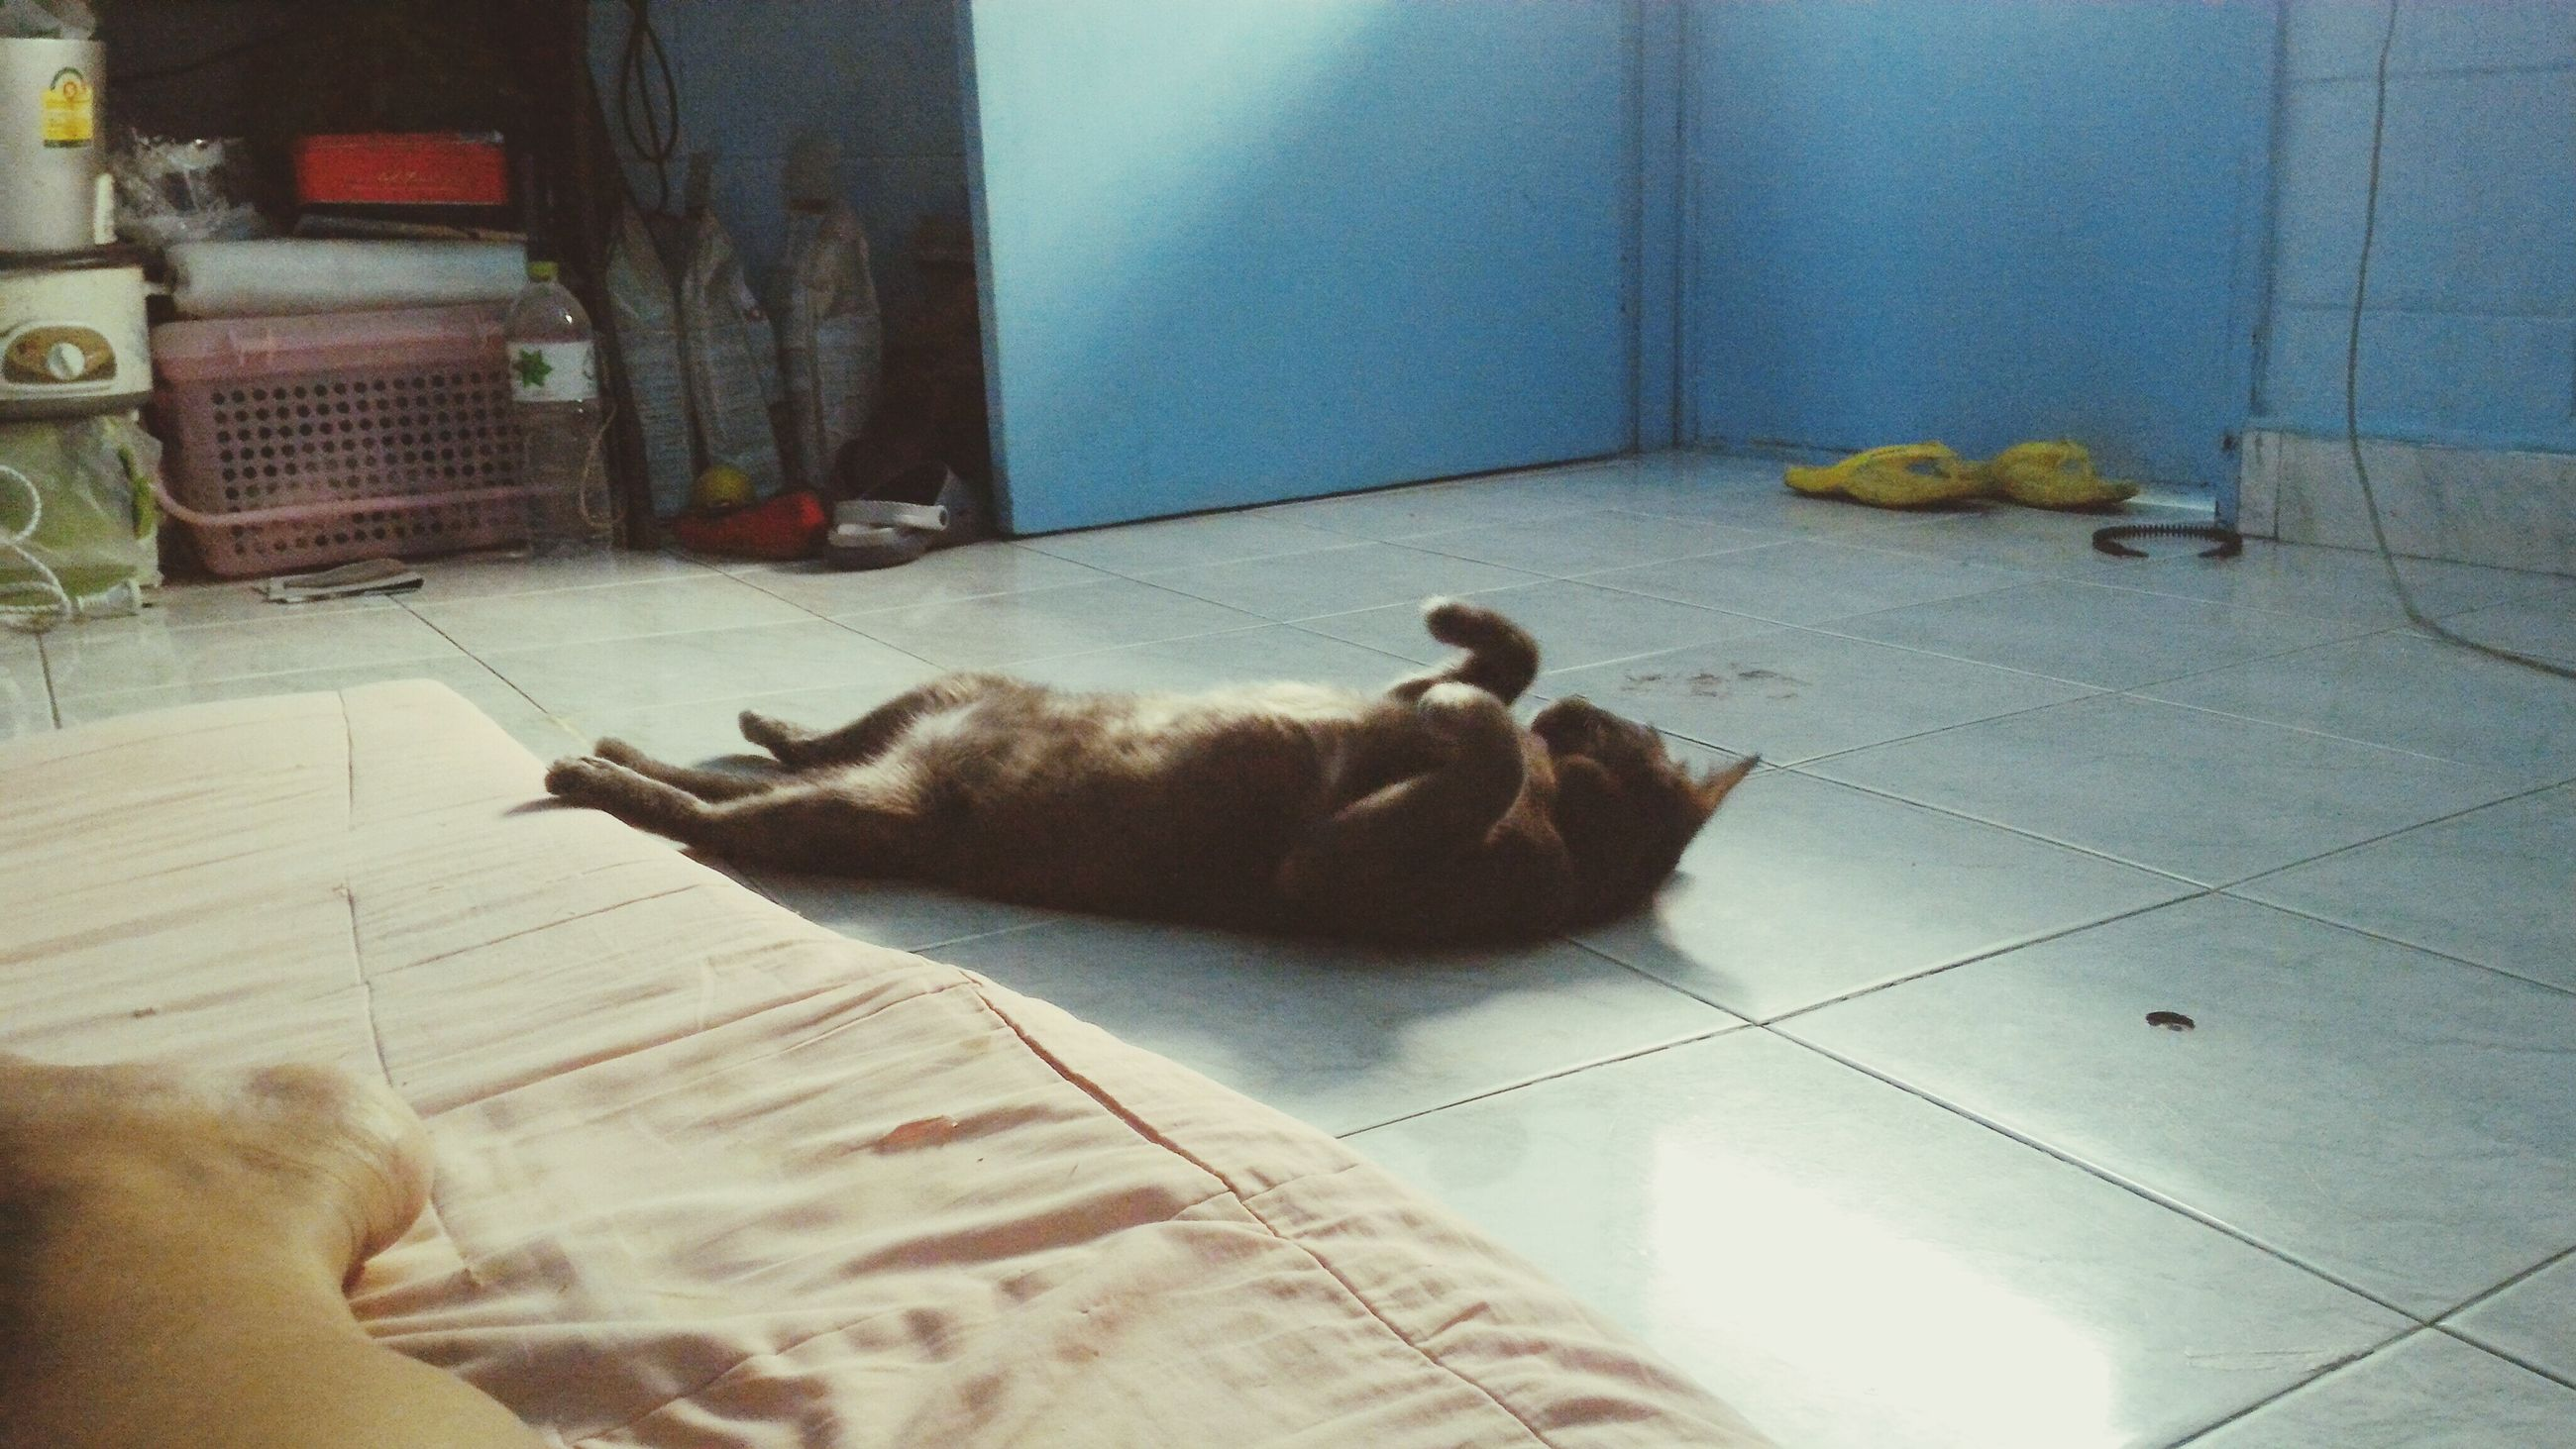 domestic animals, pets, domestic cat, animal themes, mammal, one animal, cat, feline, relaxation, indoors, full length, lying down, resting, sitting, high angle view, sleeping, dog, home interior, two animals, sunlight